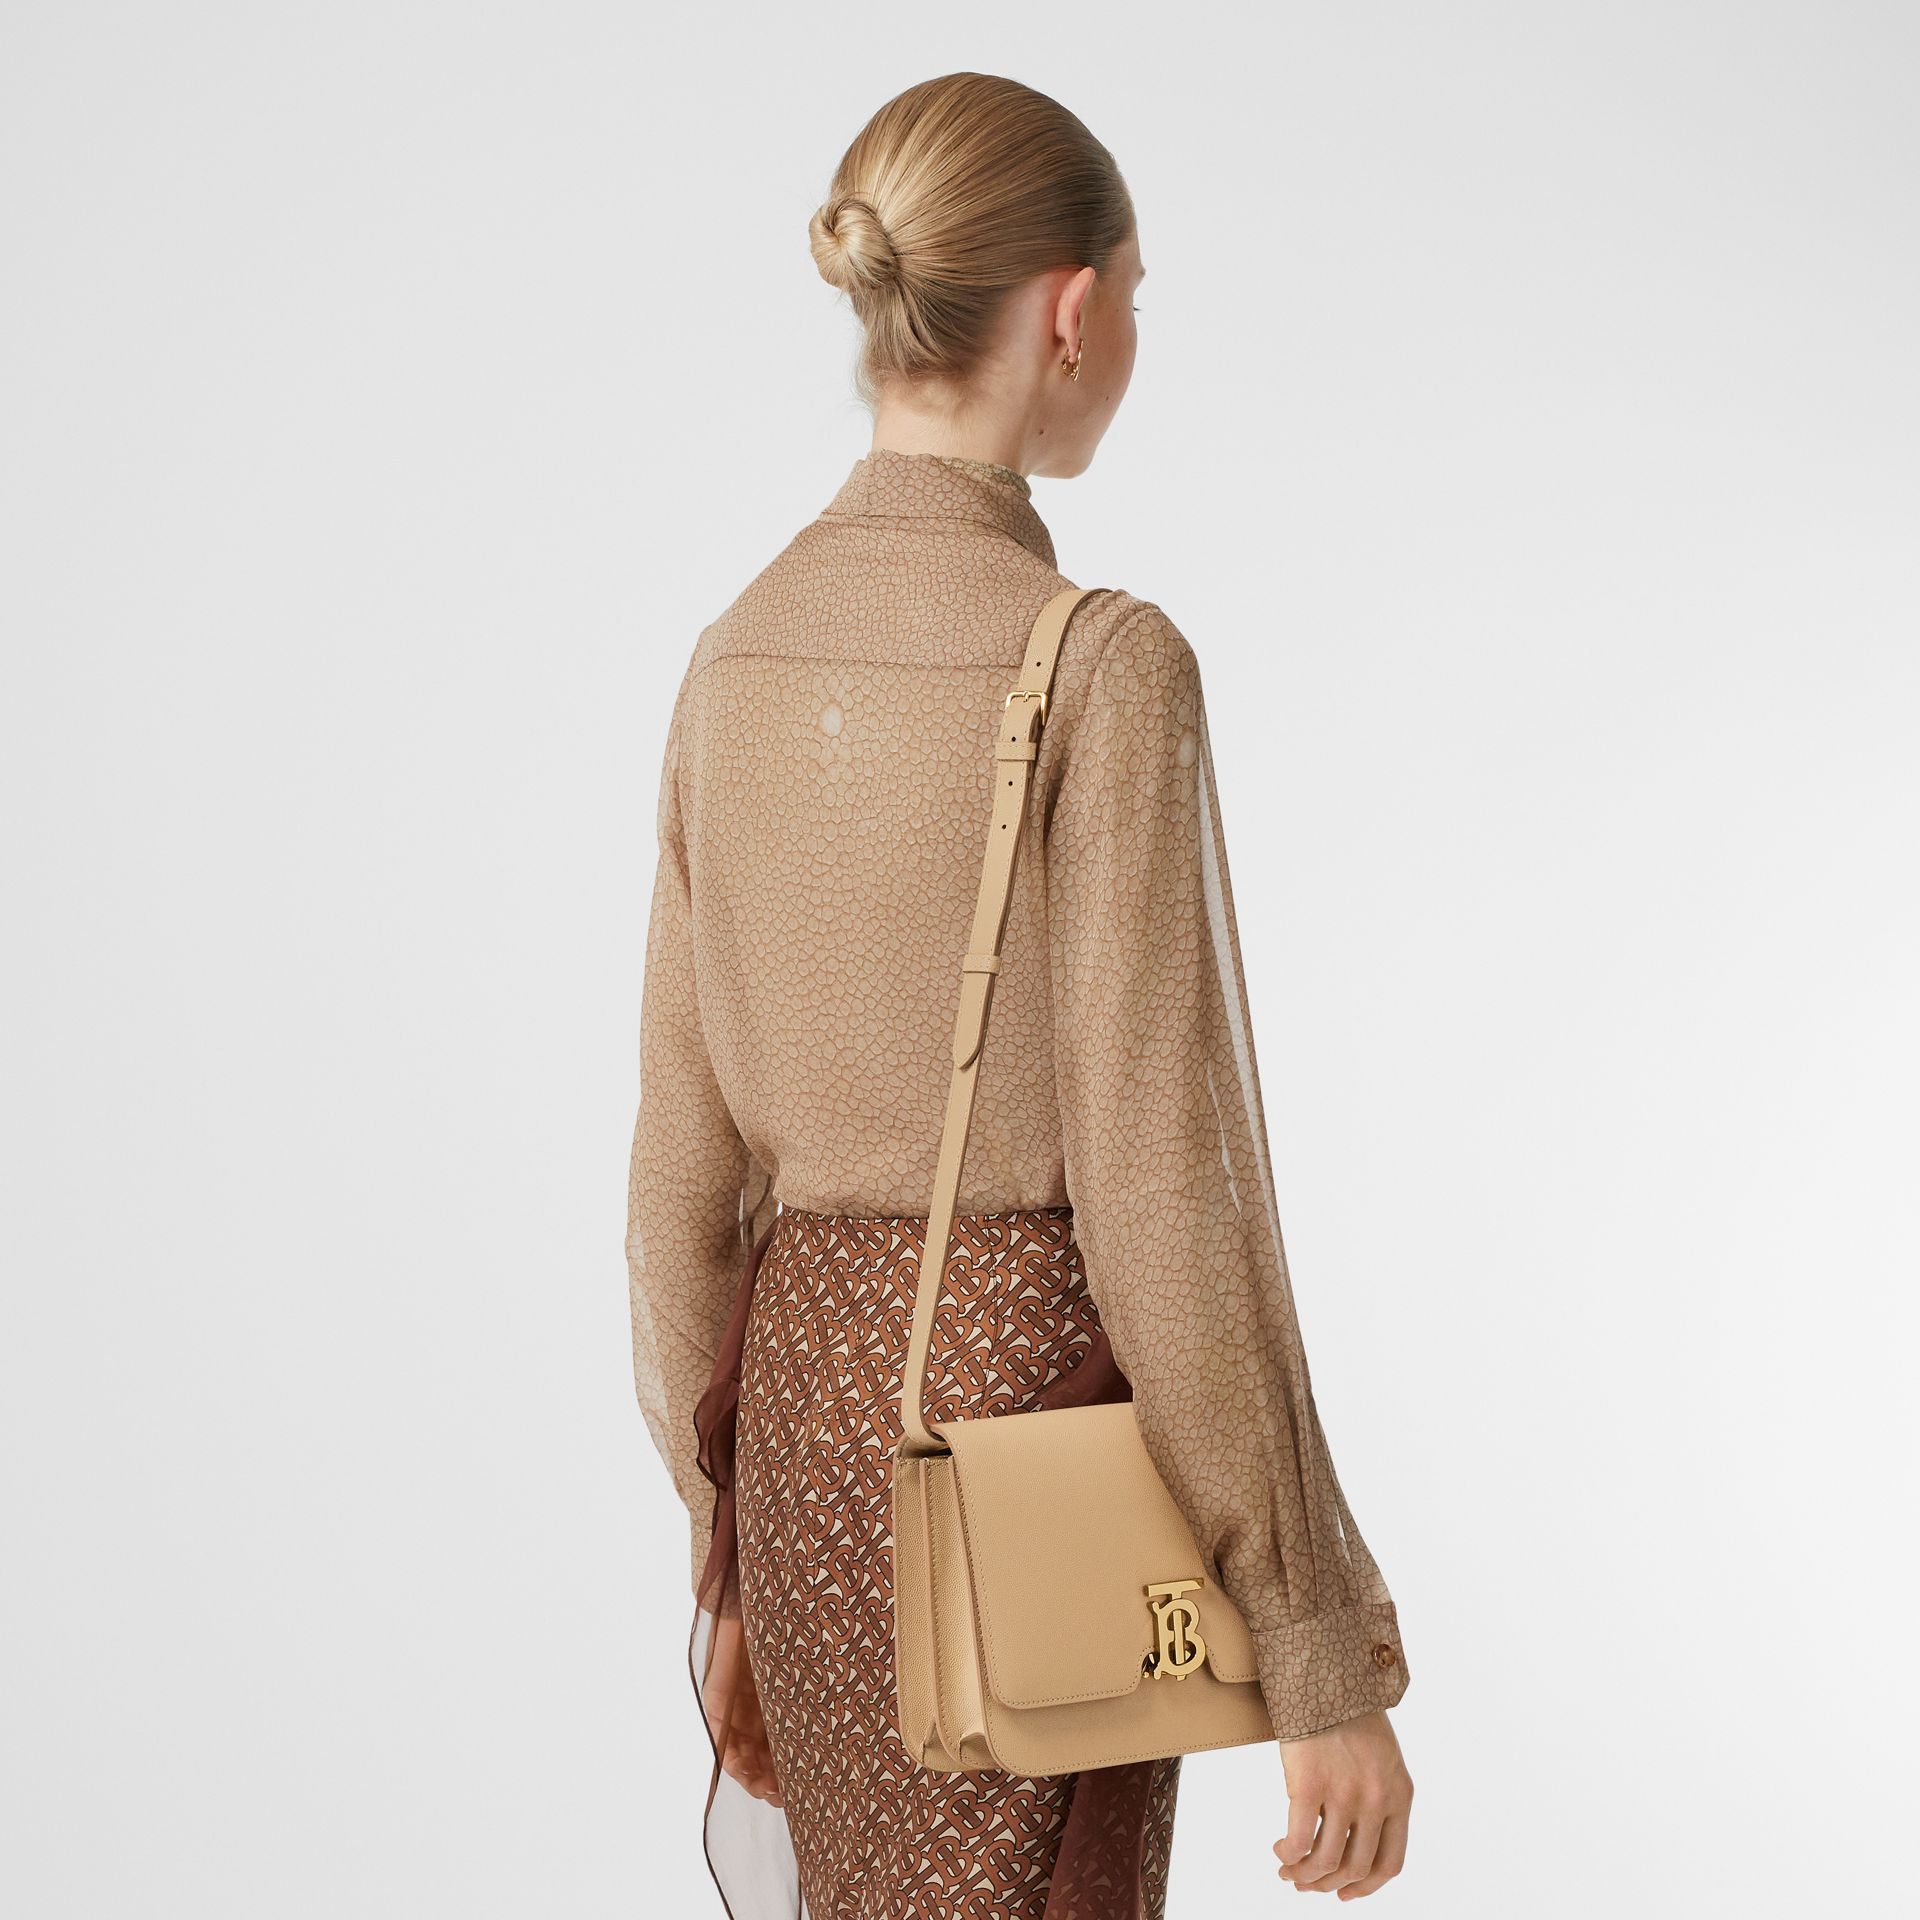 Medium Grainy Leather TB Bag in Archive Beige - Women | Burberry Canada - gallery image 2